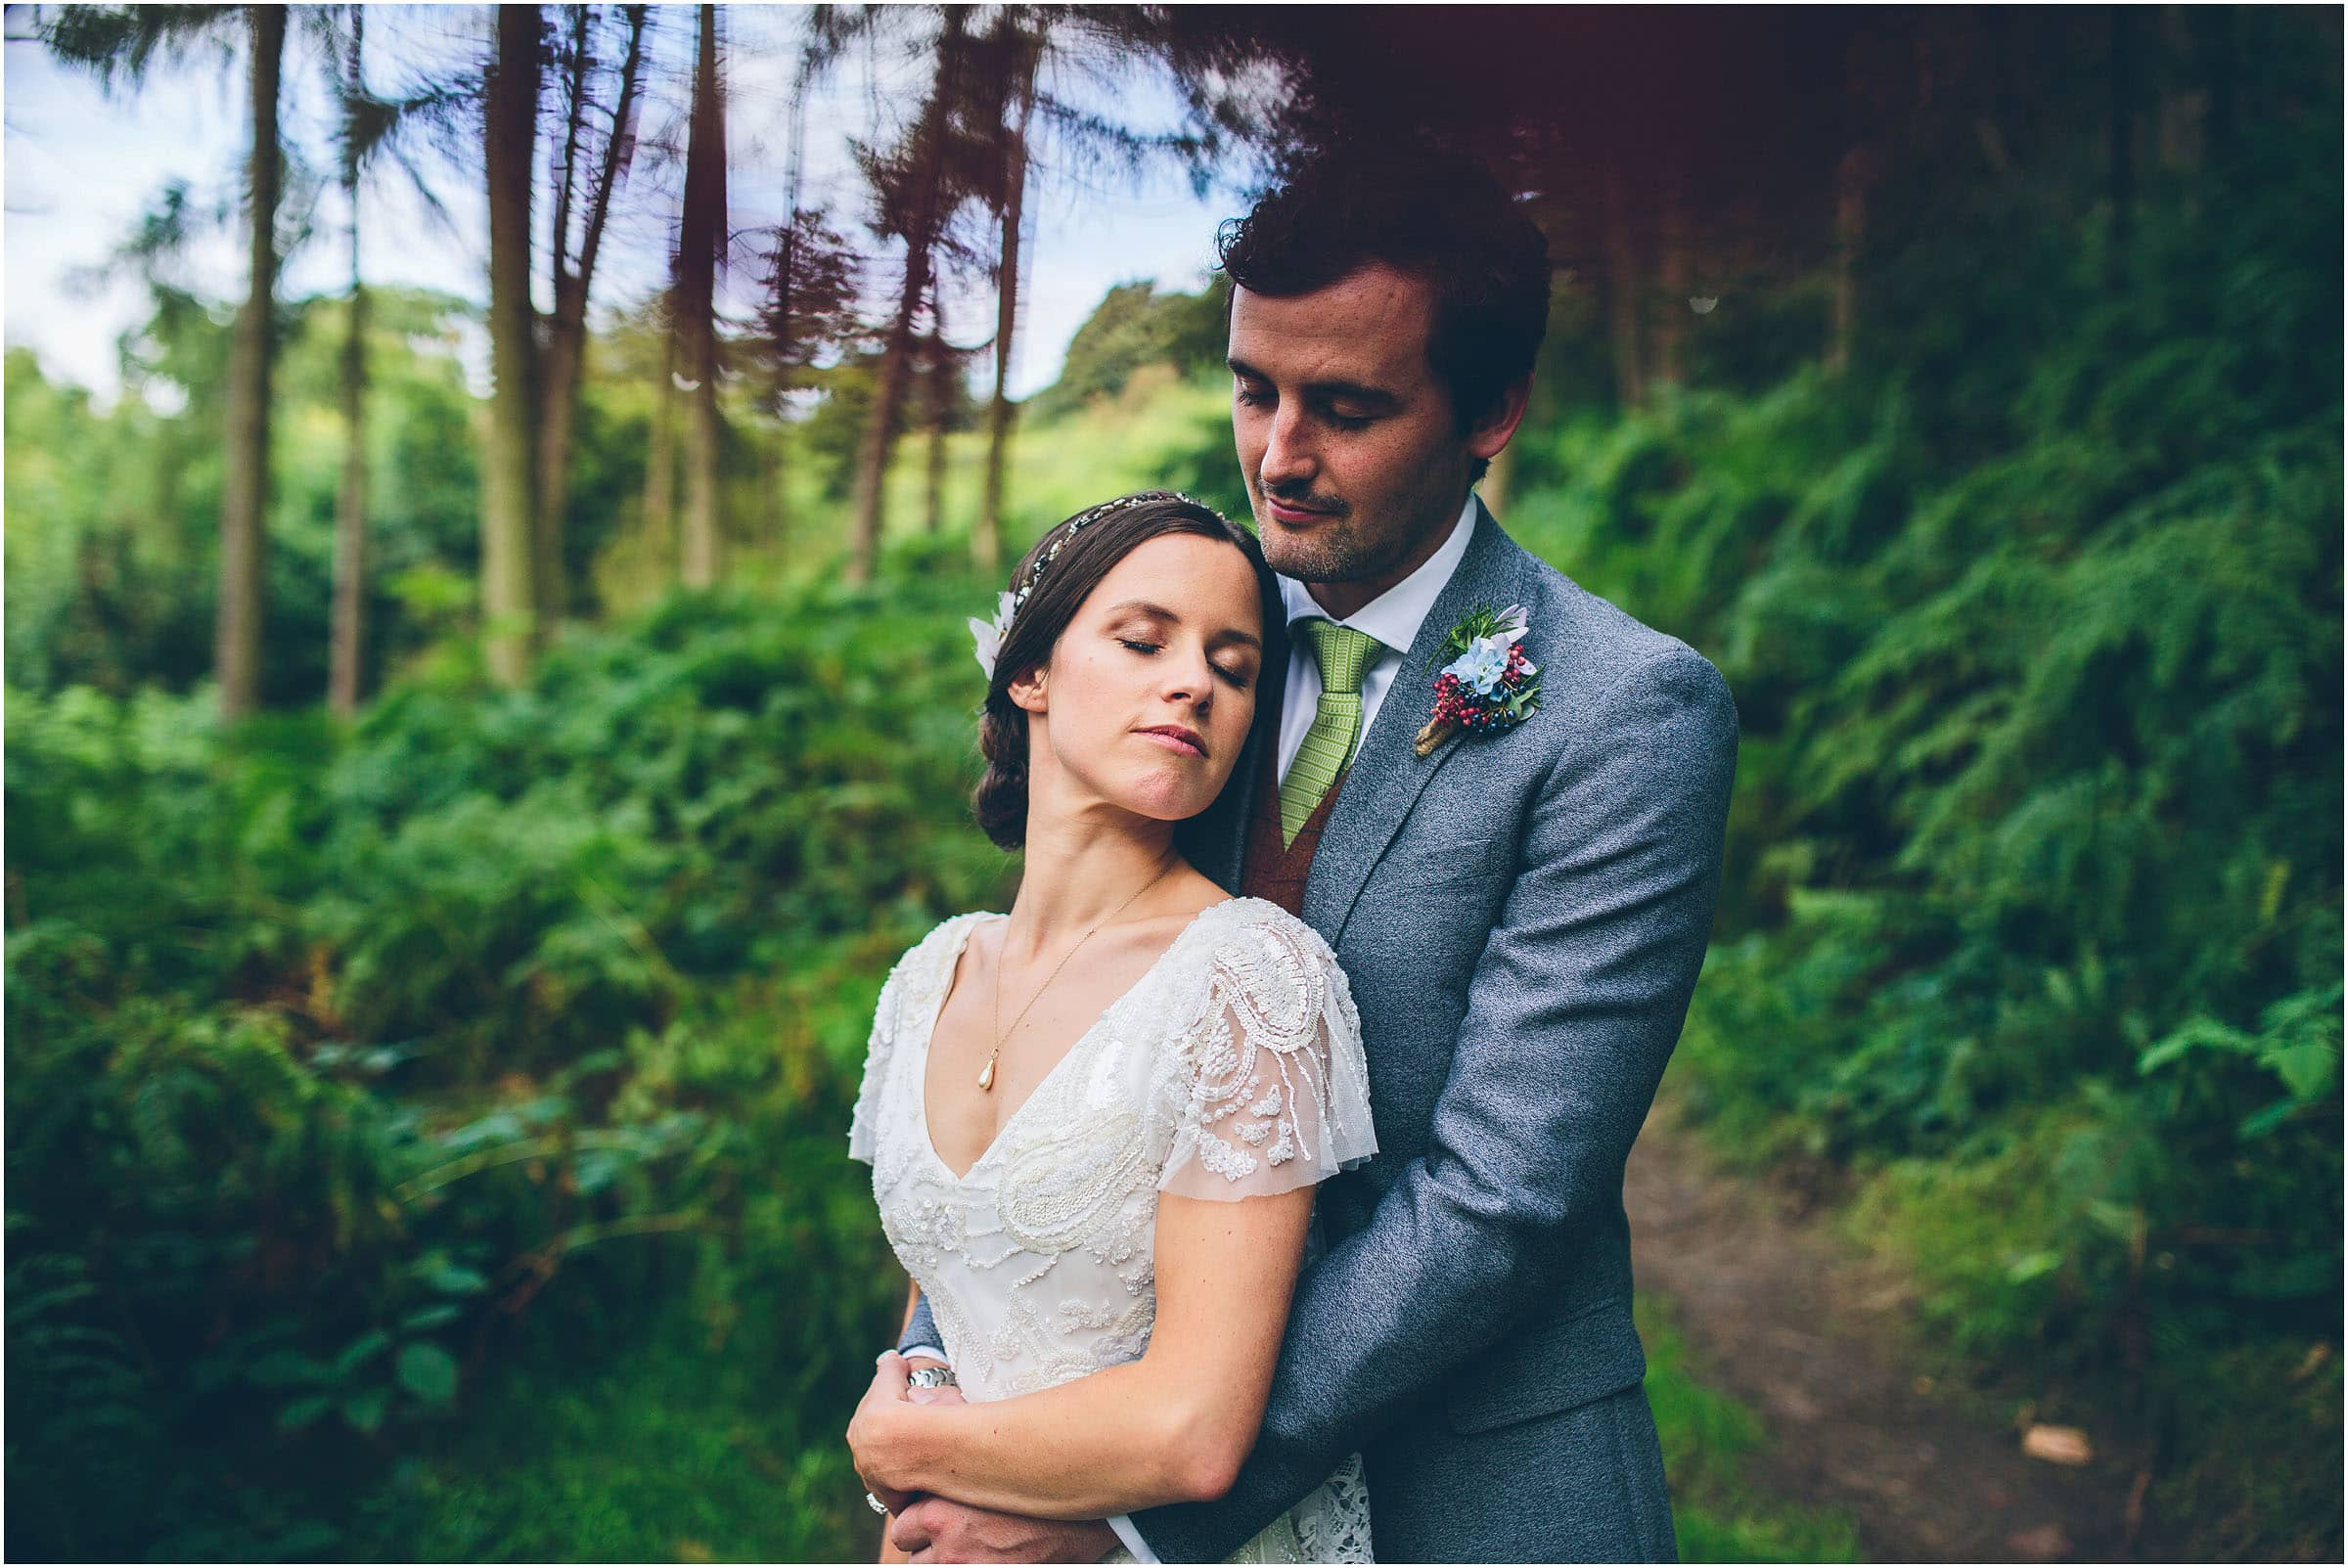 Harthill_Weddings_Wedding_Photography_0075